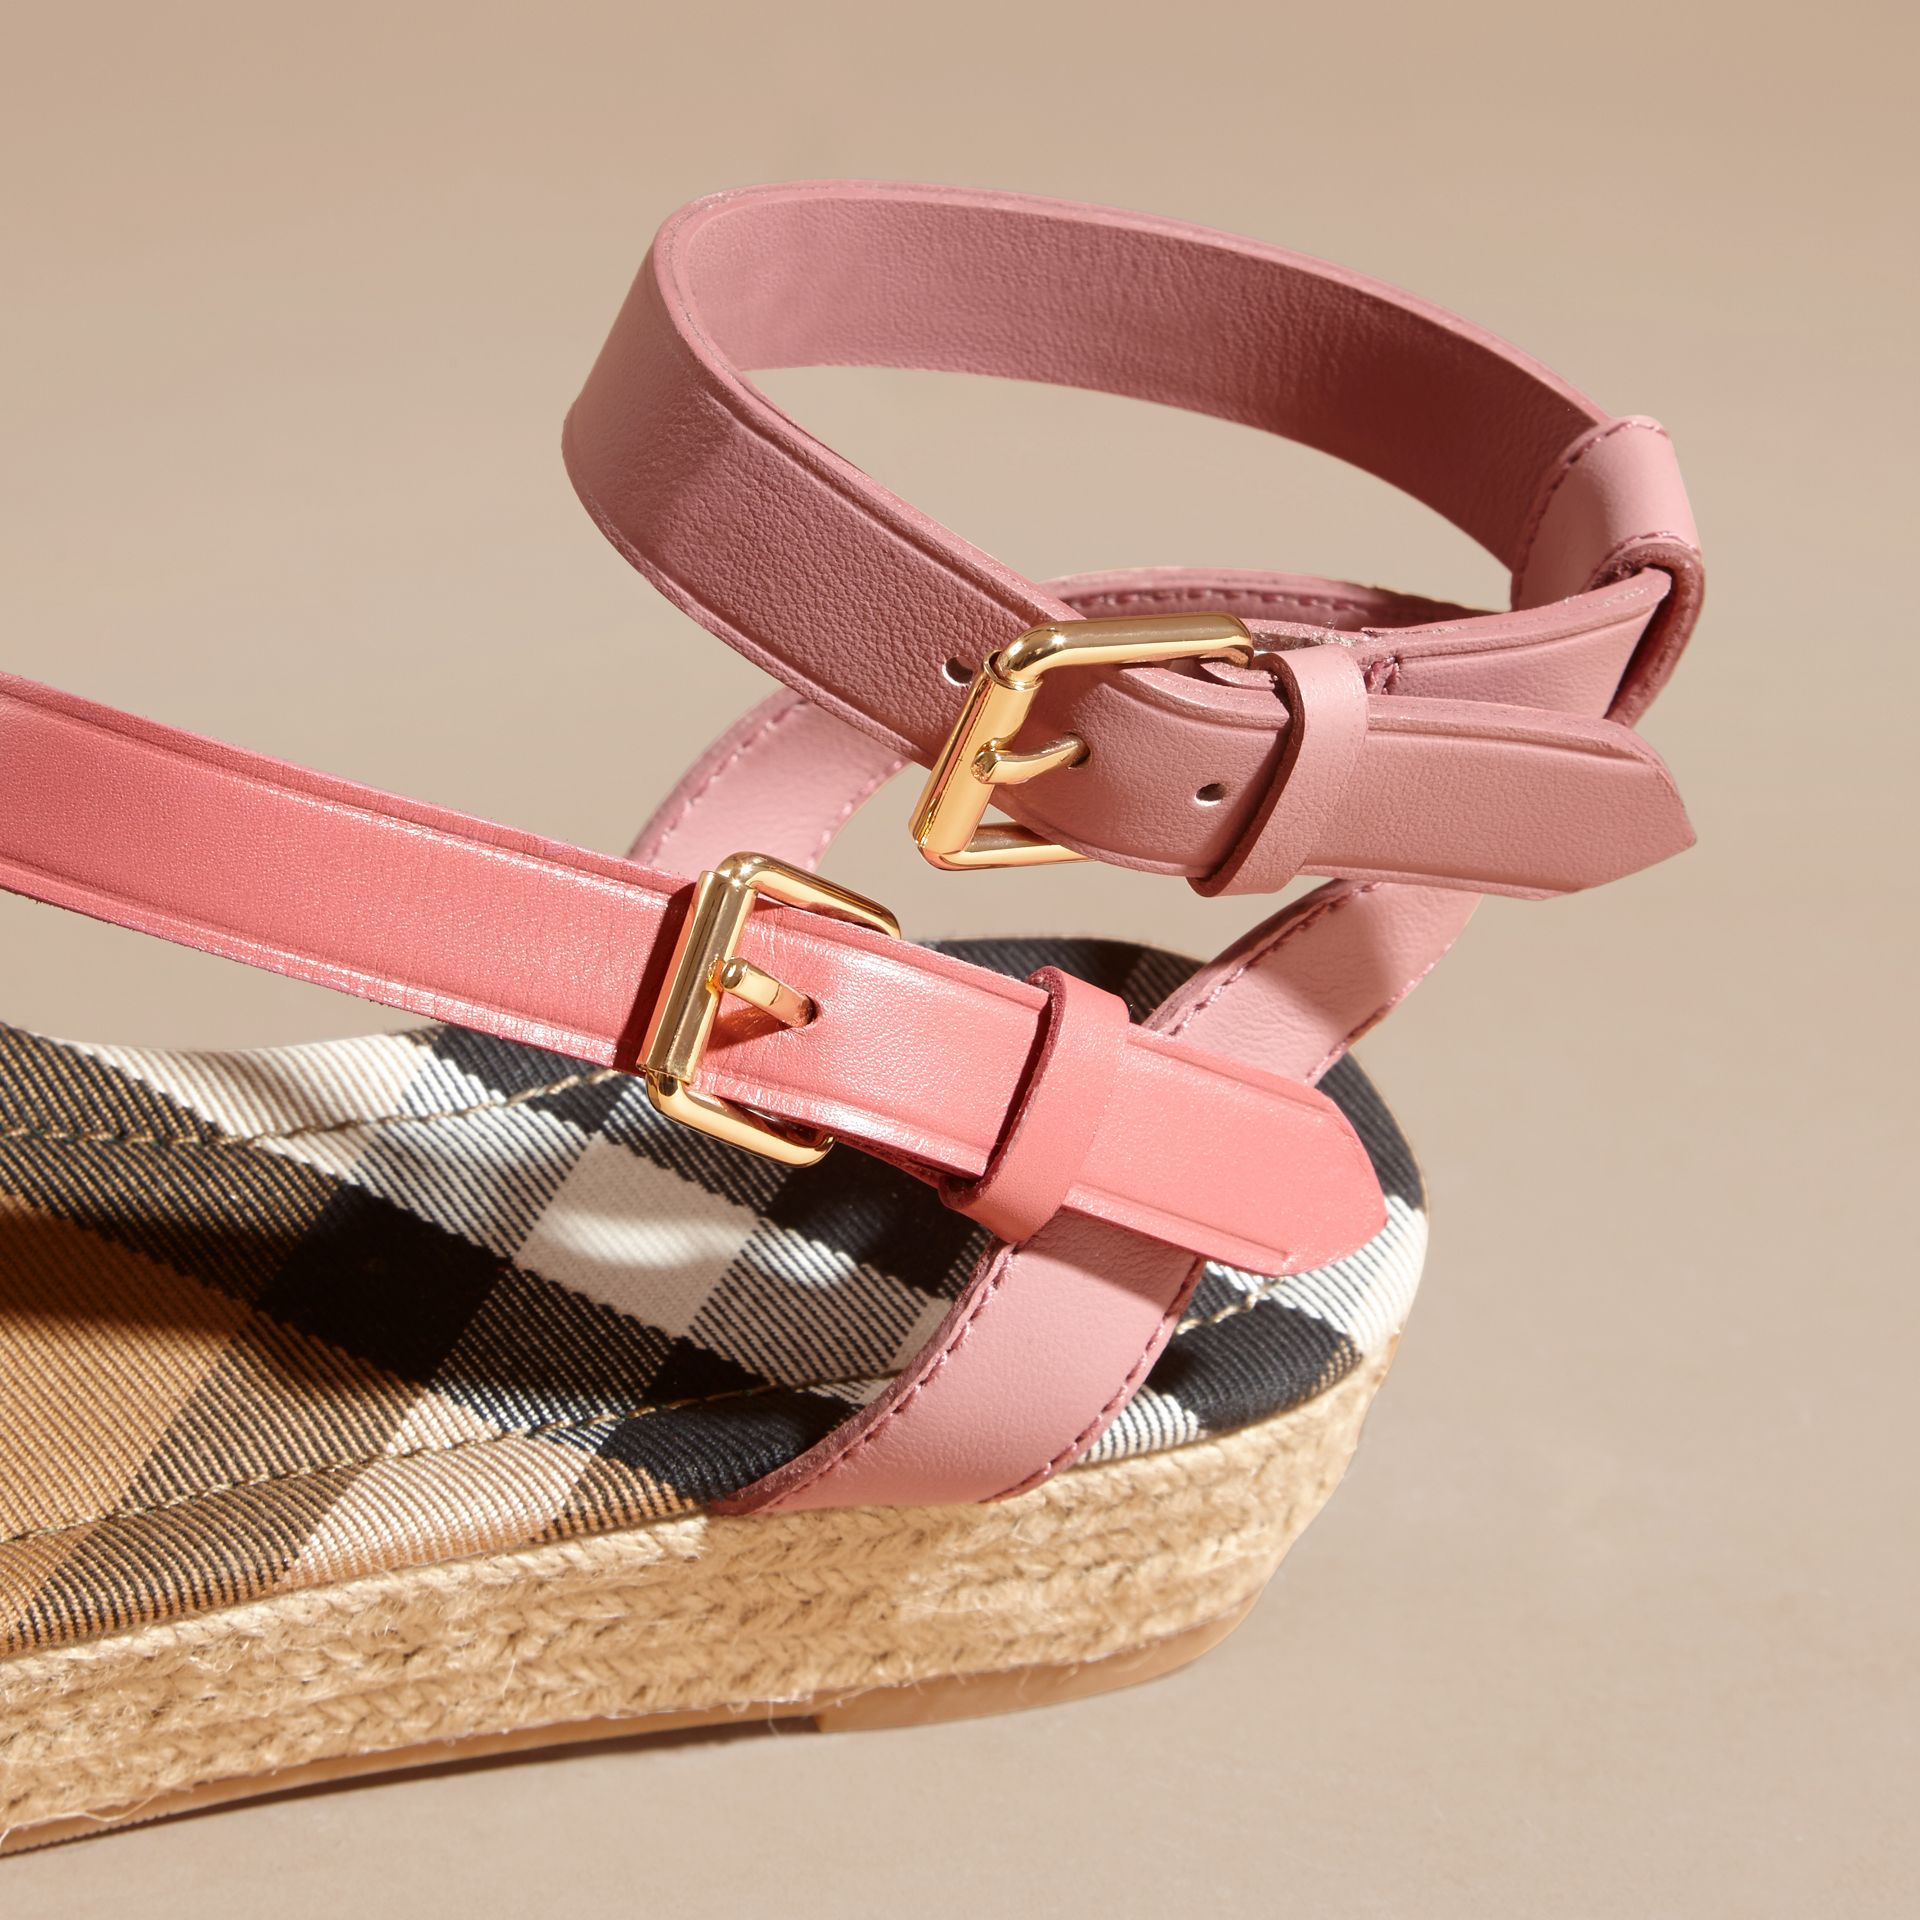 Two-tone Leather Espadrille Sandals - Women | Burberry - gallery image 2